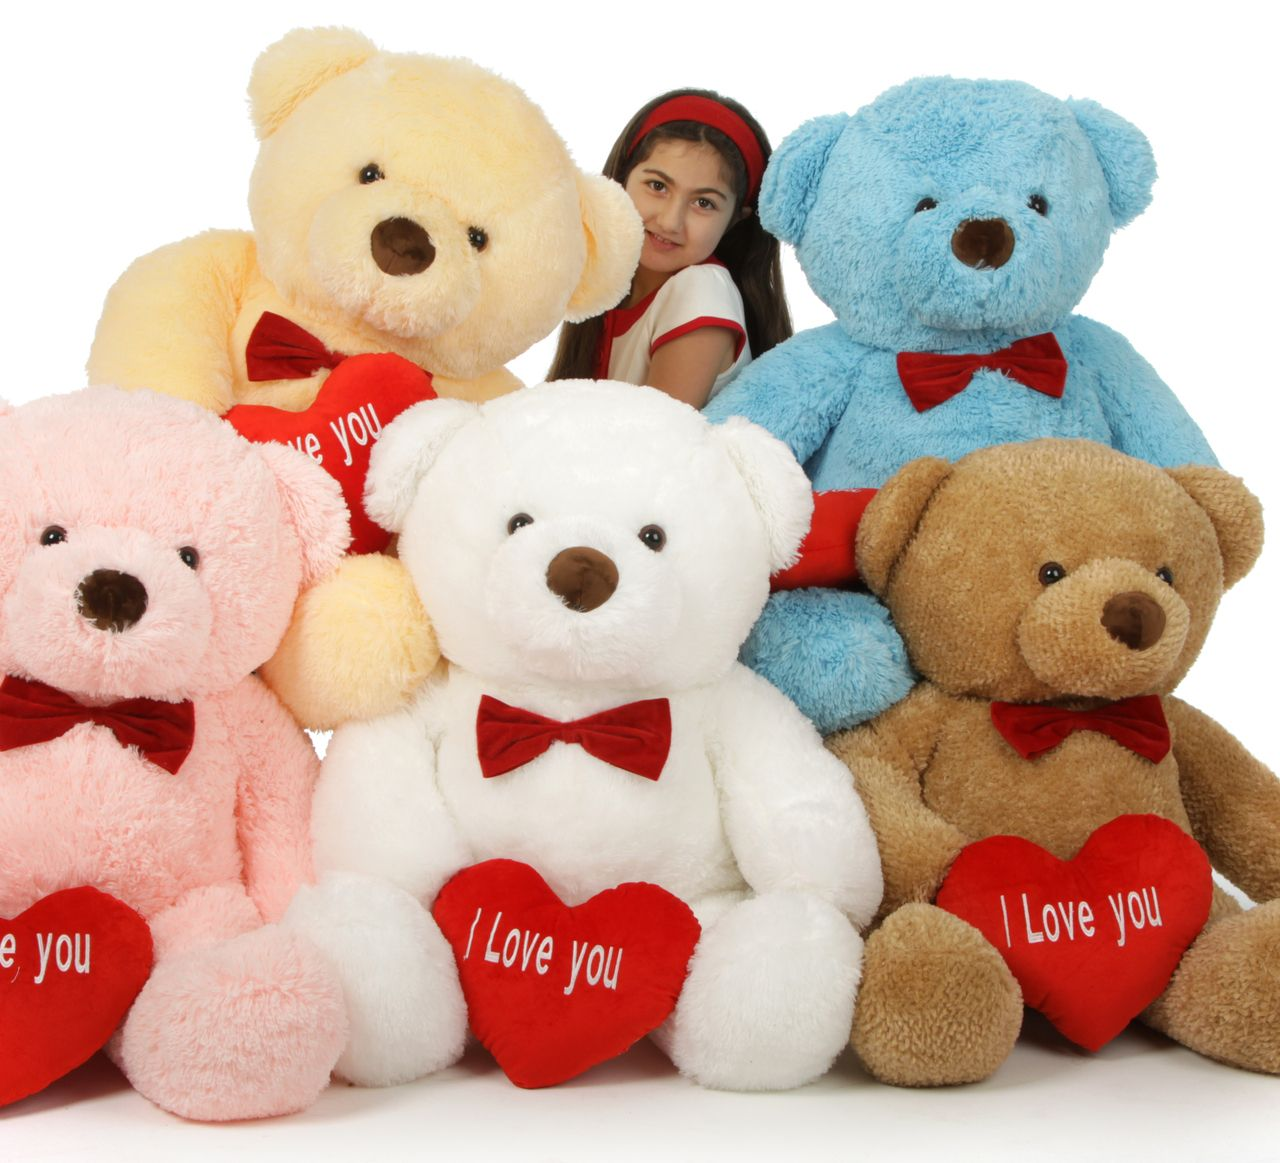 Giant Teddy   Valentineu0027s Day 38in Chubs Teddy Bears With I Love You Heart,  In